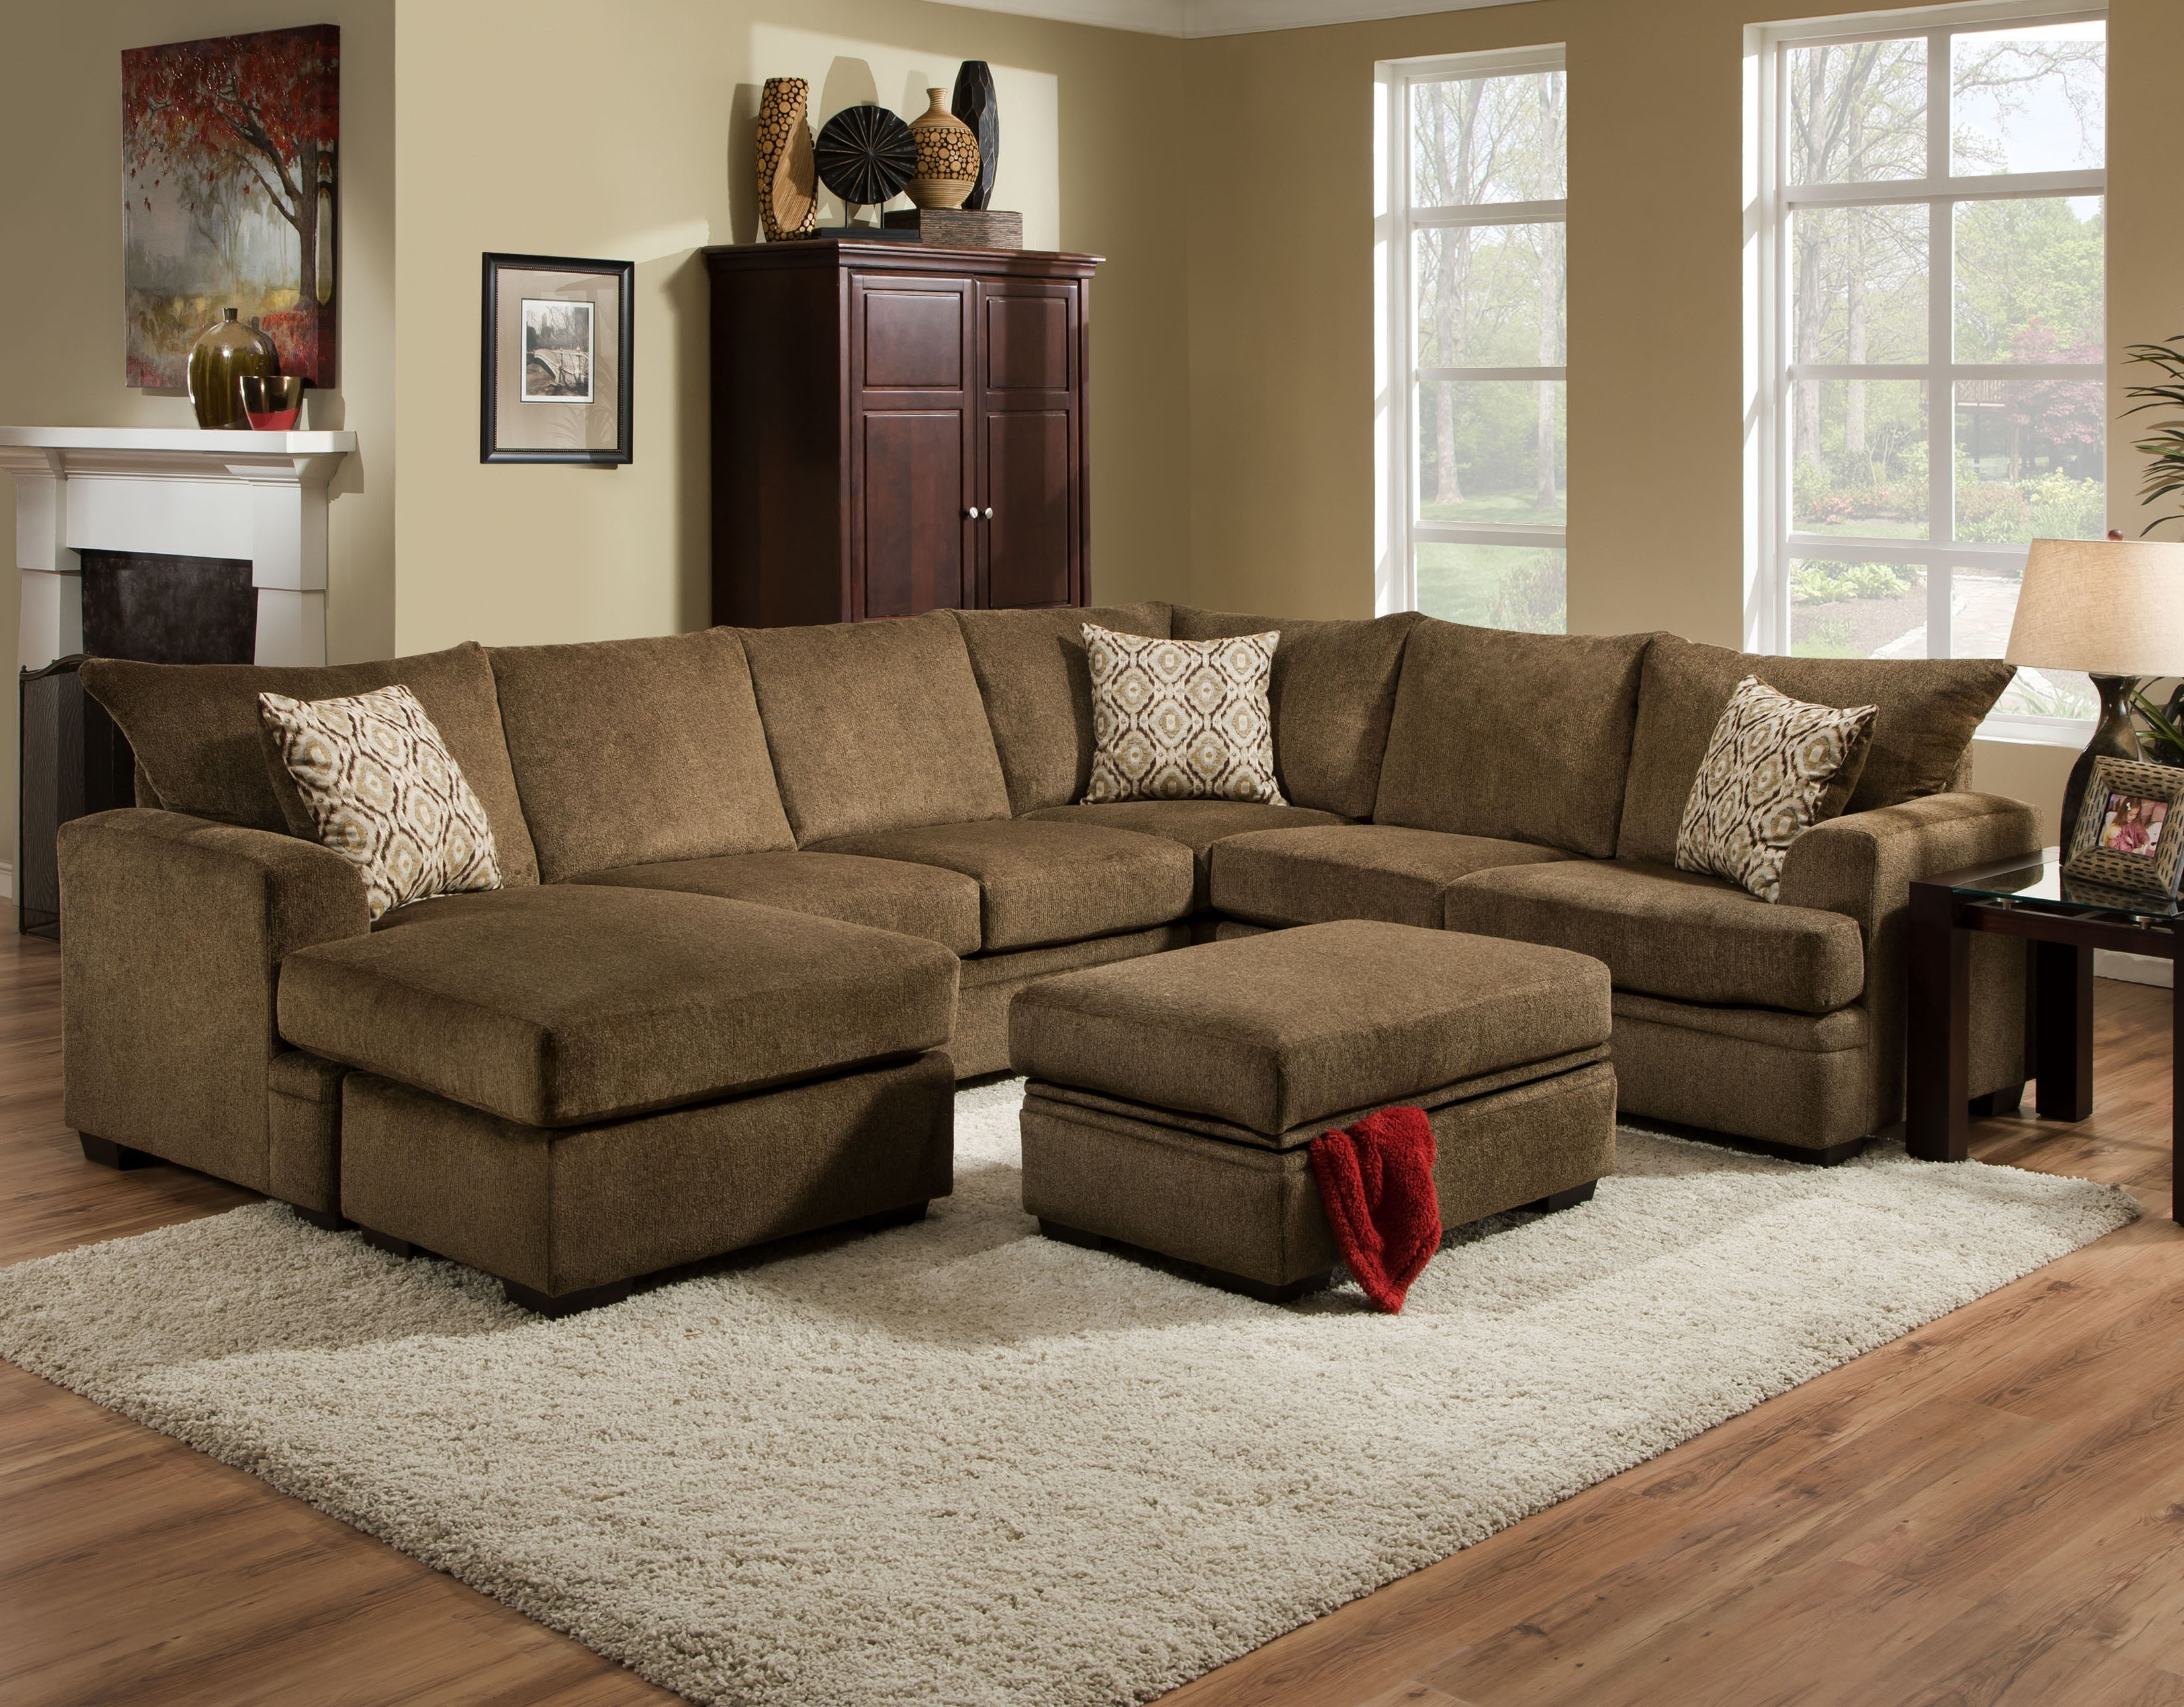 Living Room – Crazy Joe's Best Deal Furniture For Recent Janesville Wi Sectional Sofas (View 4 of 20)